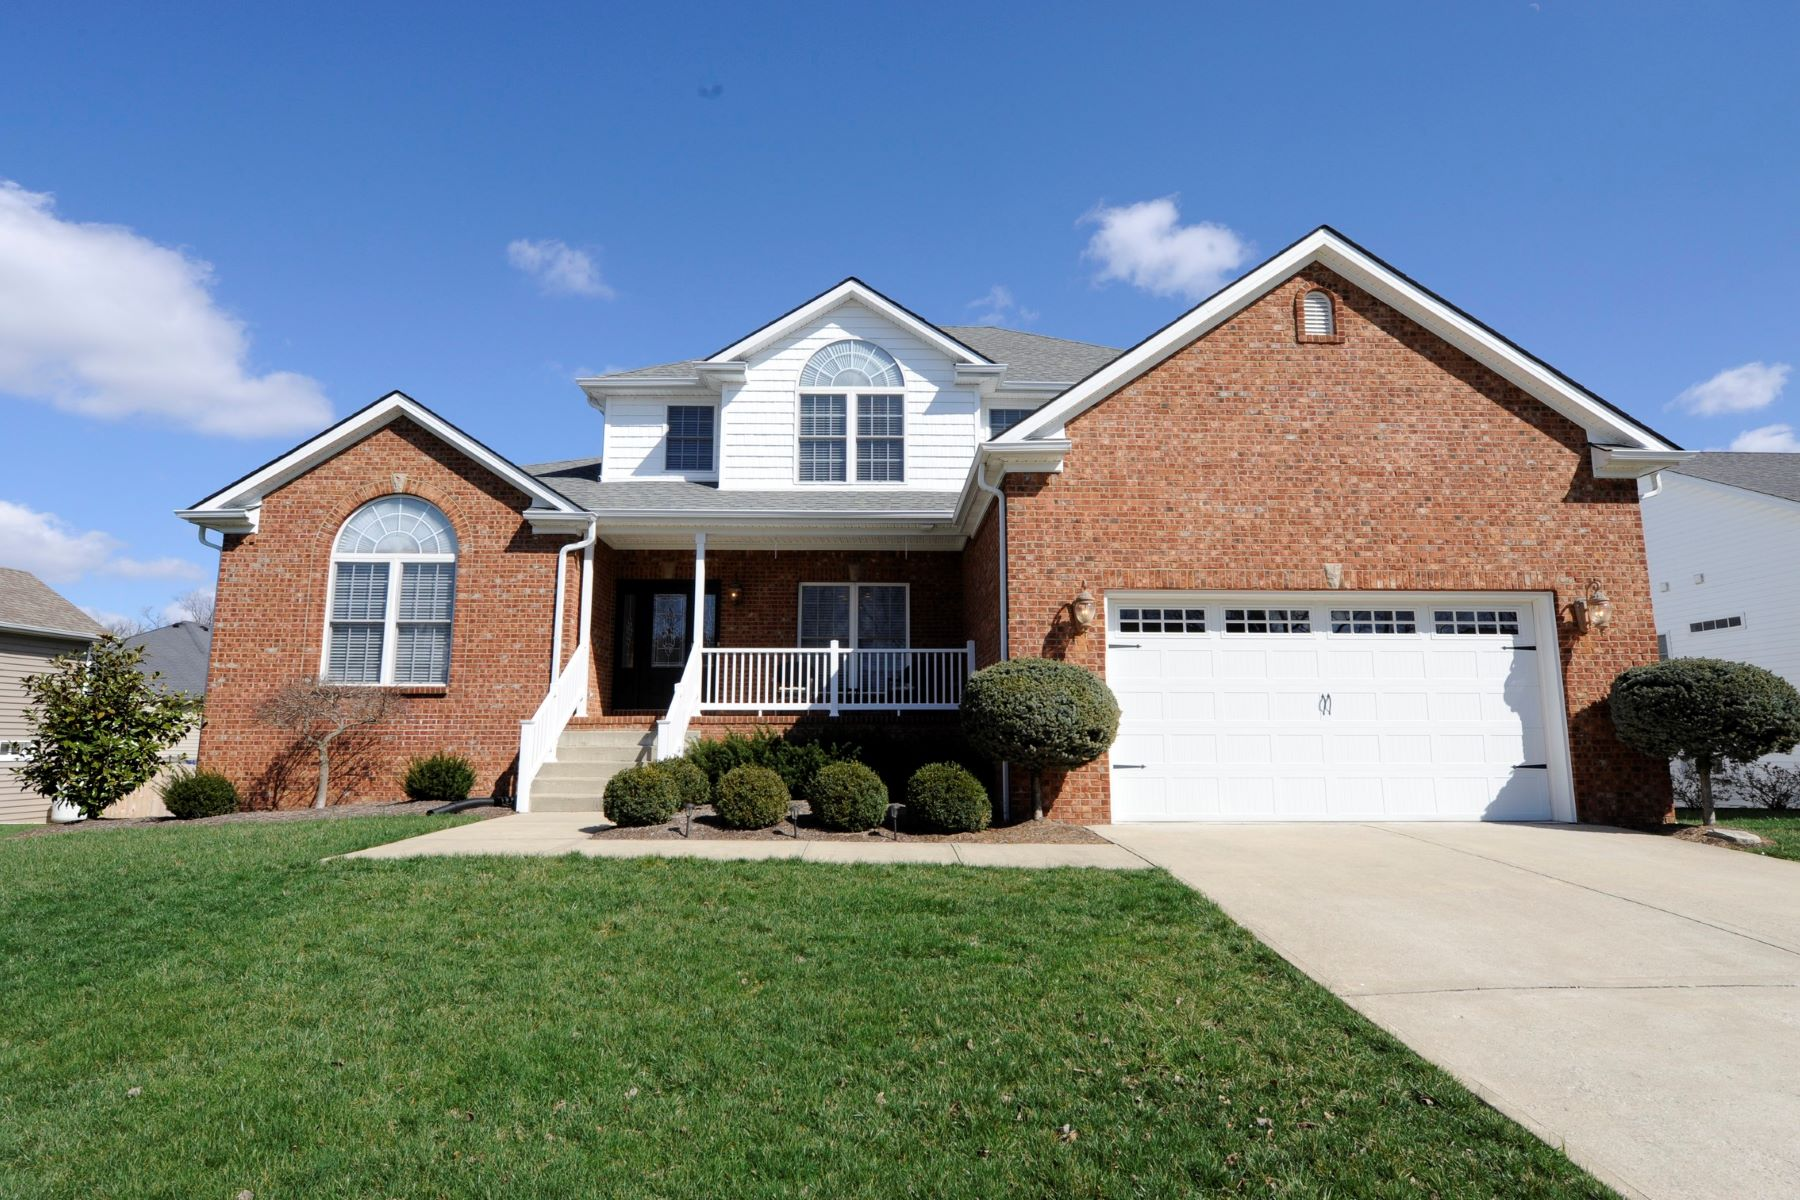 Single Family Home for Sale at 805 Flint Ridge Versailles, Kentucky 40383 United States